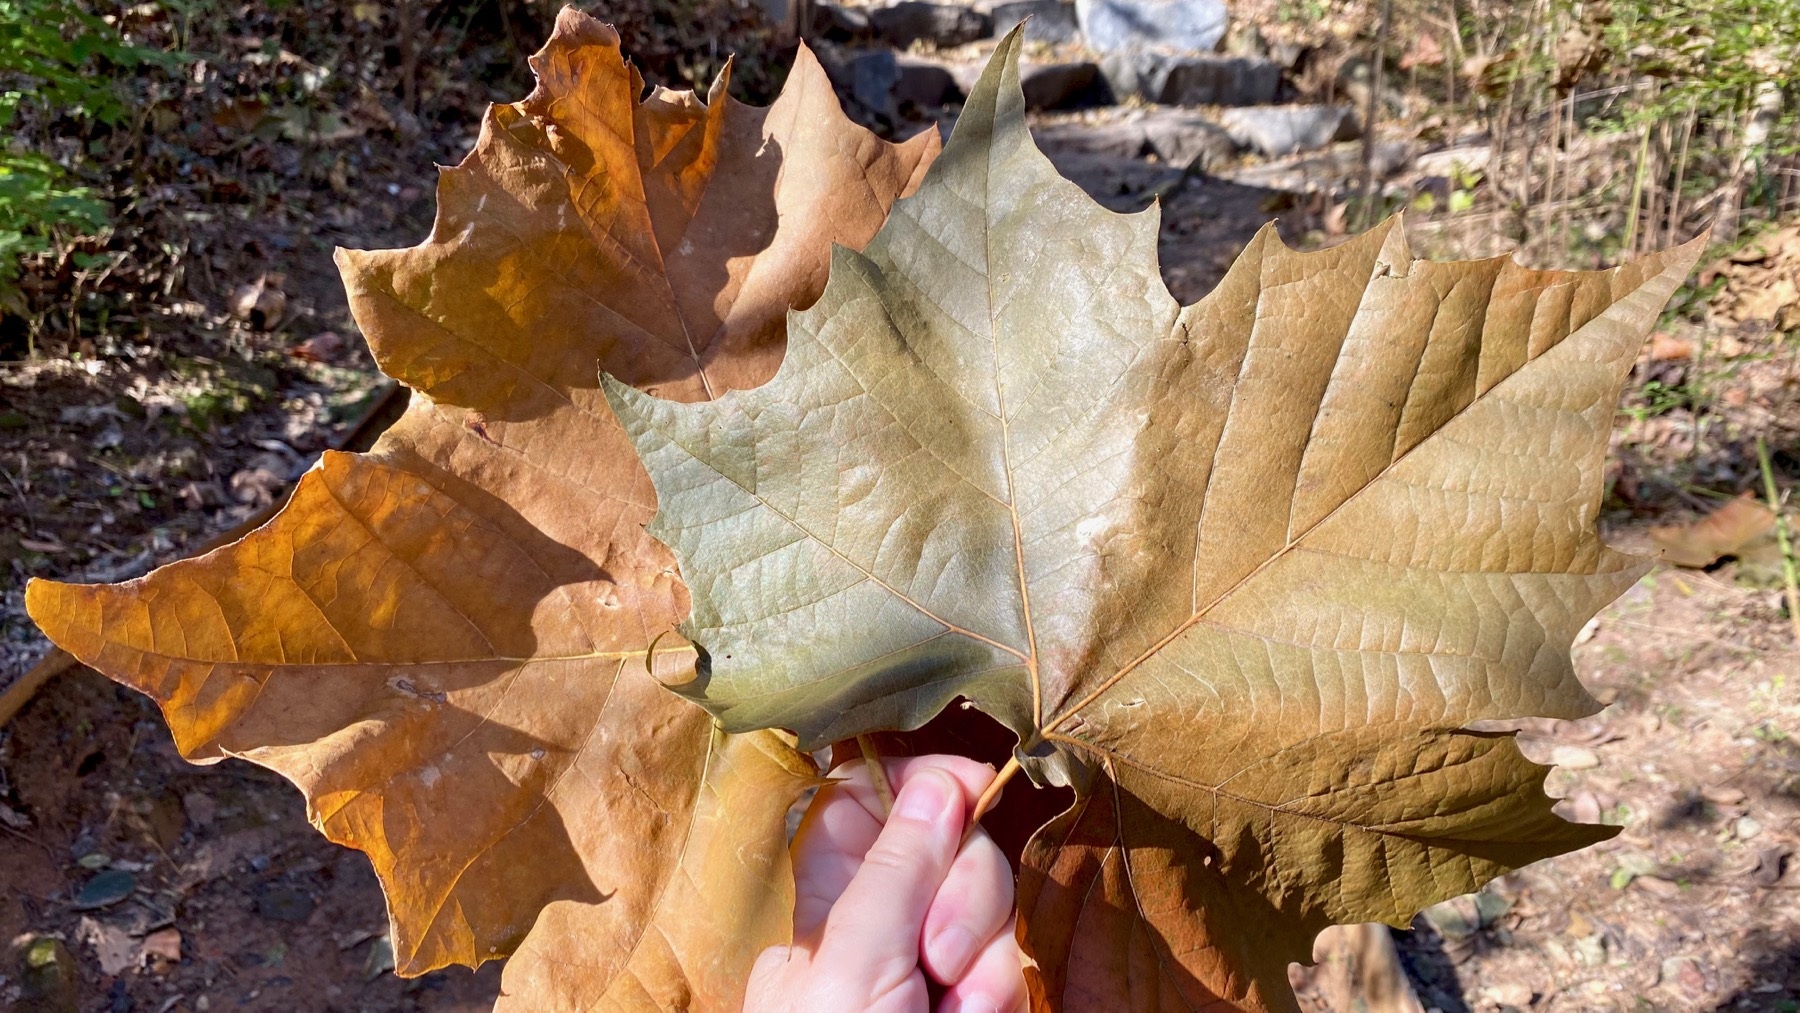 Big sycamore leaves